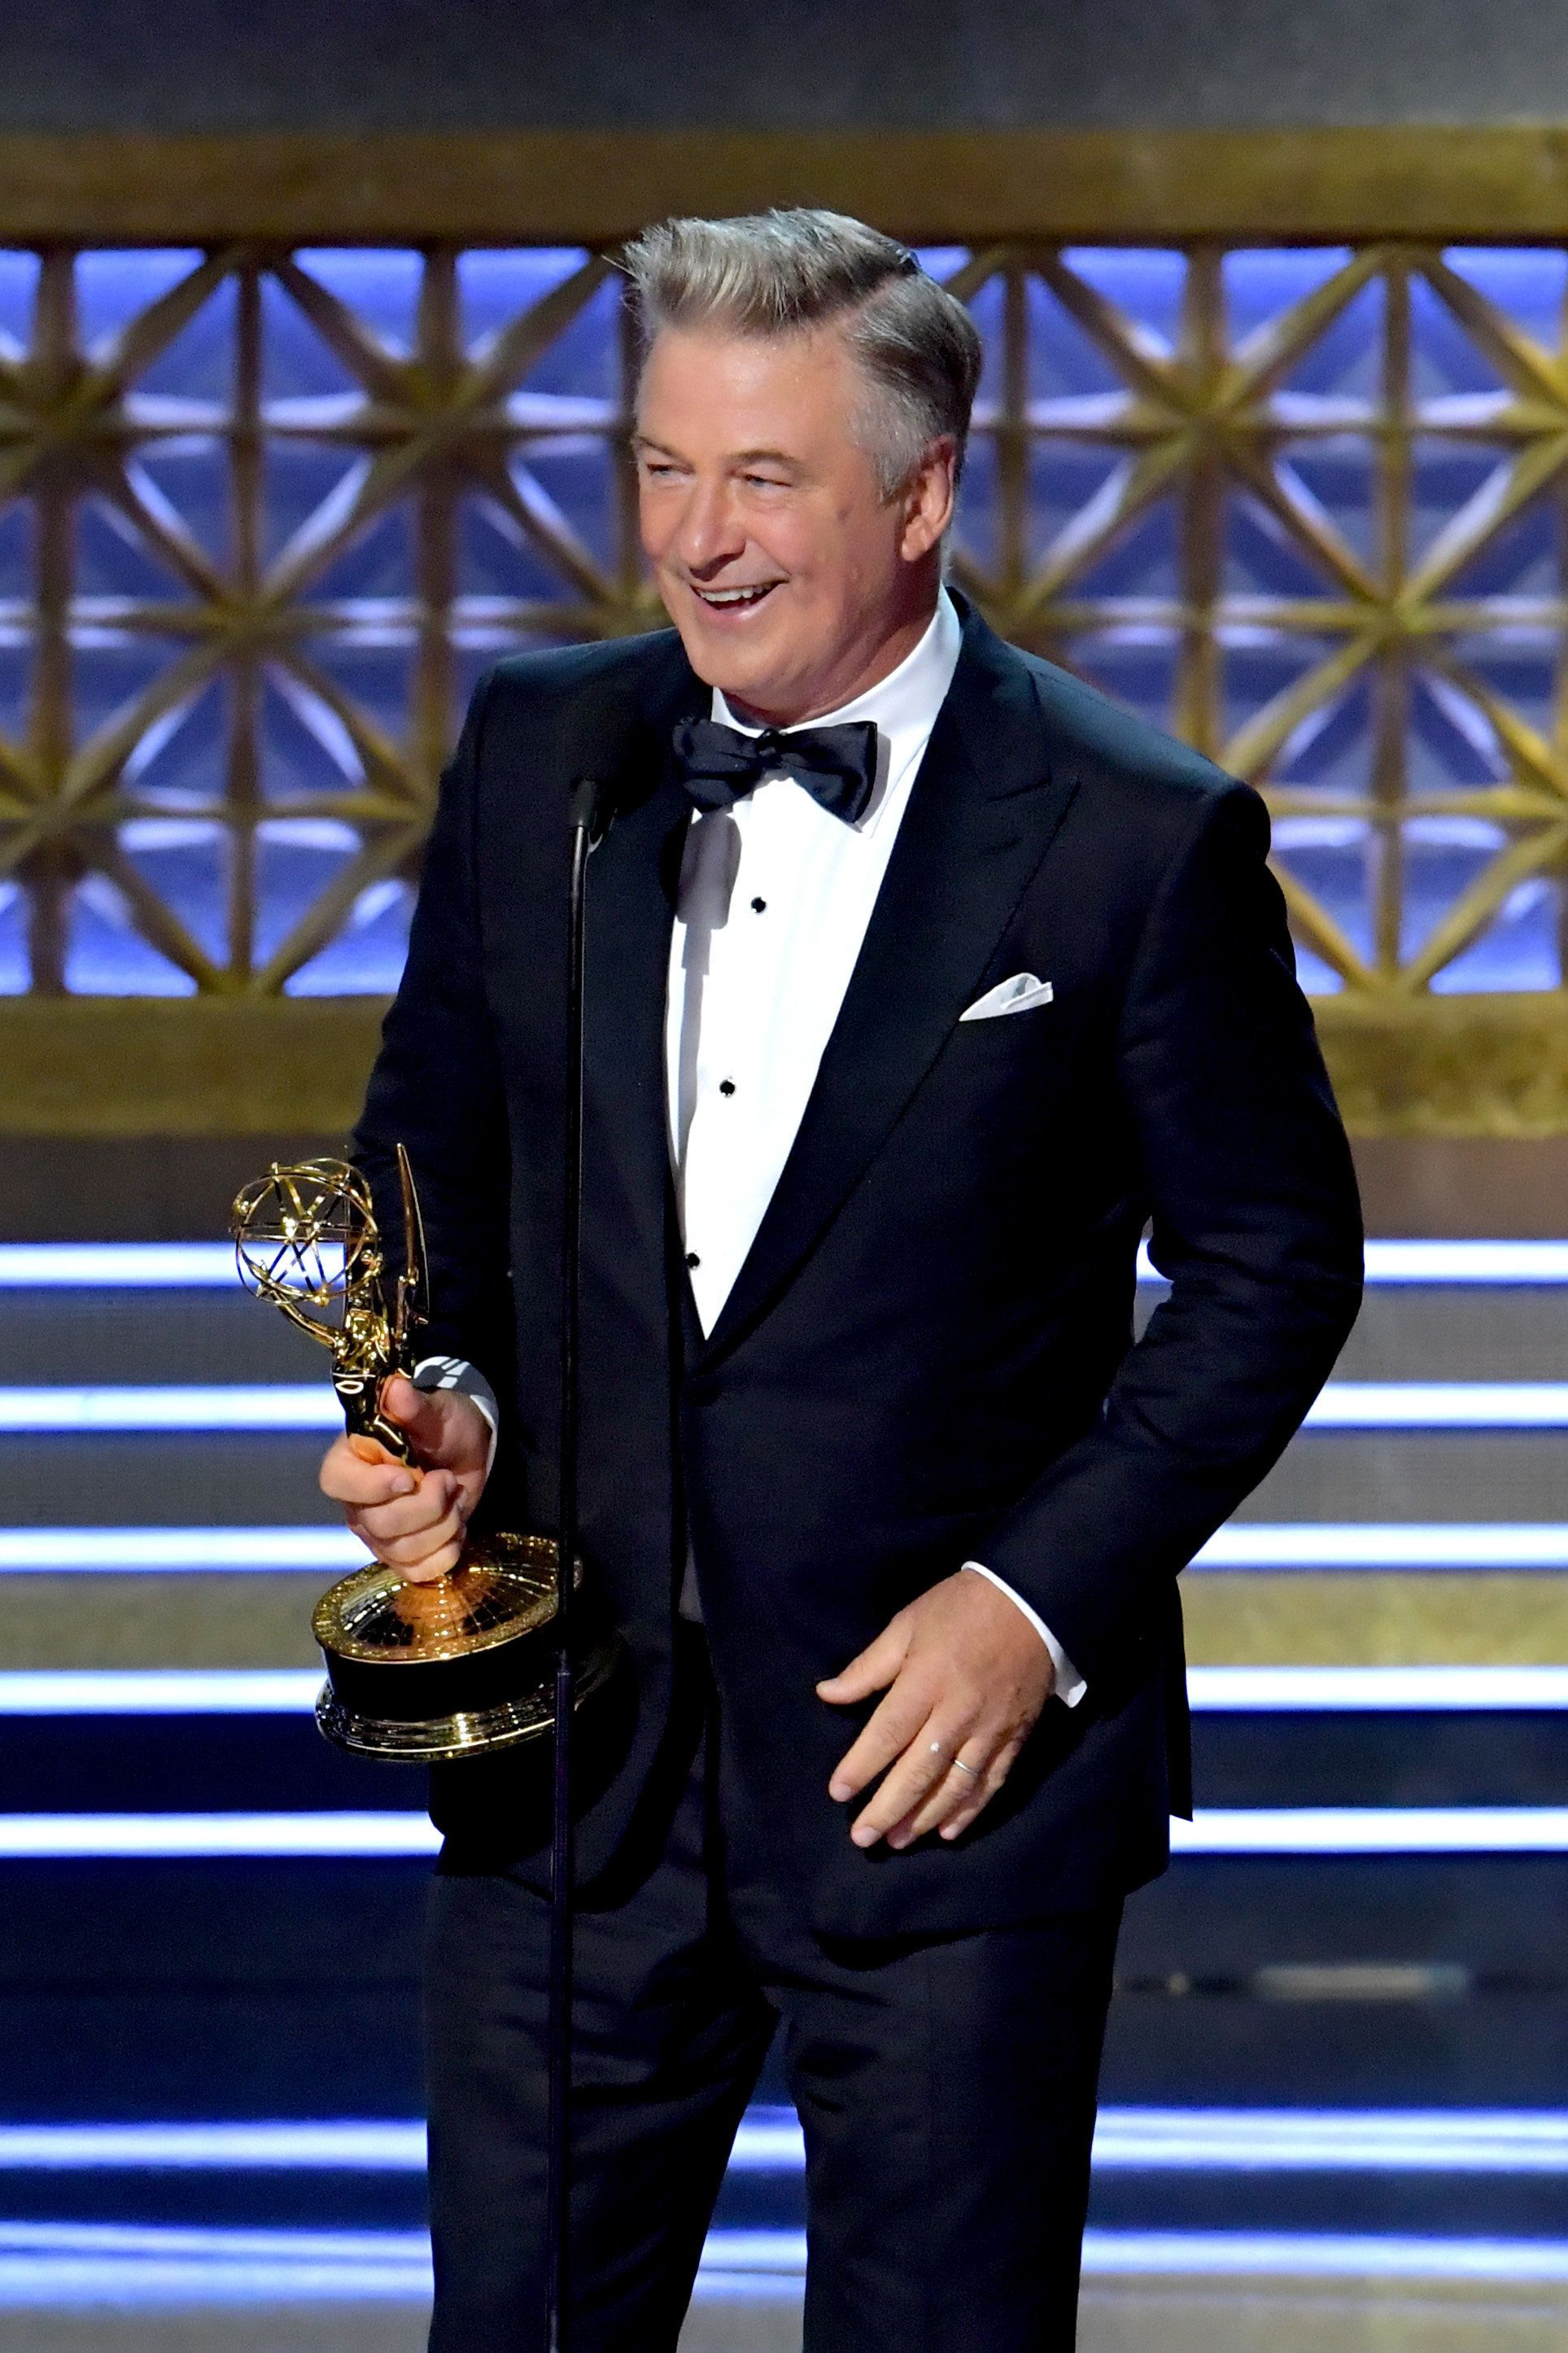 LOS ANGELES, CA - SEPTEMBER 17:  Actor Alec Baldwin accepts the Outstanding Supporting Actor in a Comedy Series award for 'Saturday Night Live' onstage during the 69th Annual Primetime Emmy Awards at Microsoft Theater on September 17, 2017 in Los Angeles, California.  (Photo by Lester Cohen/WireImage)